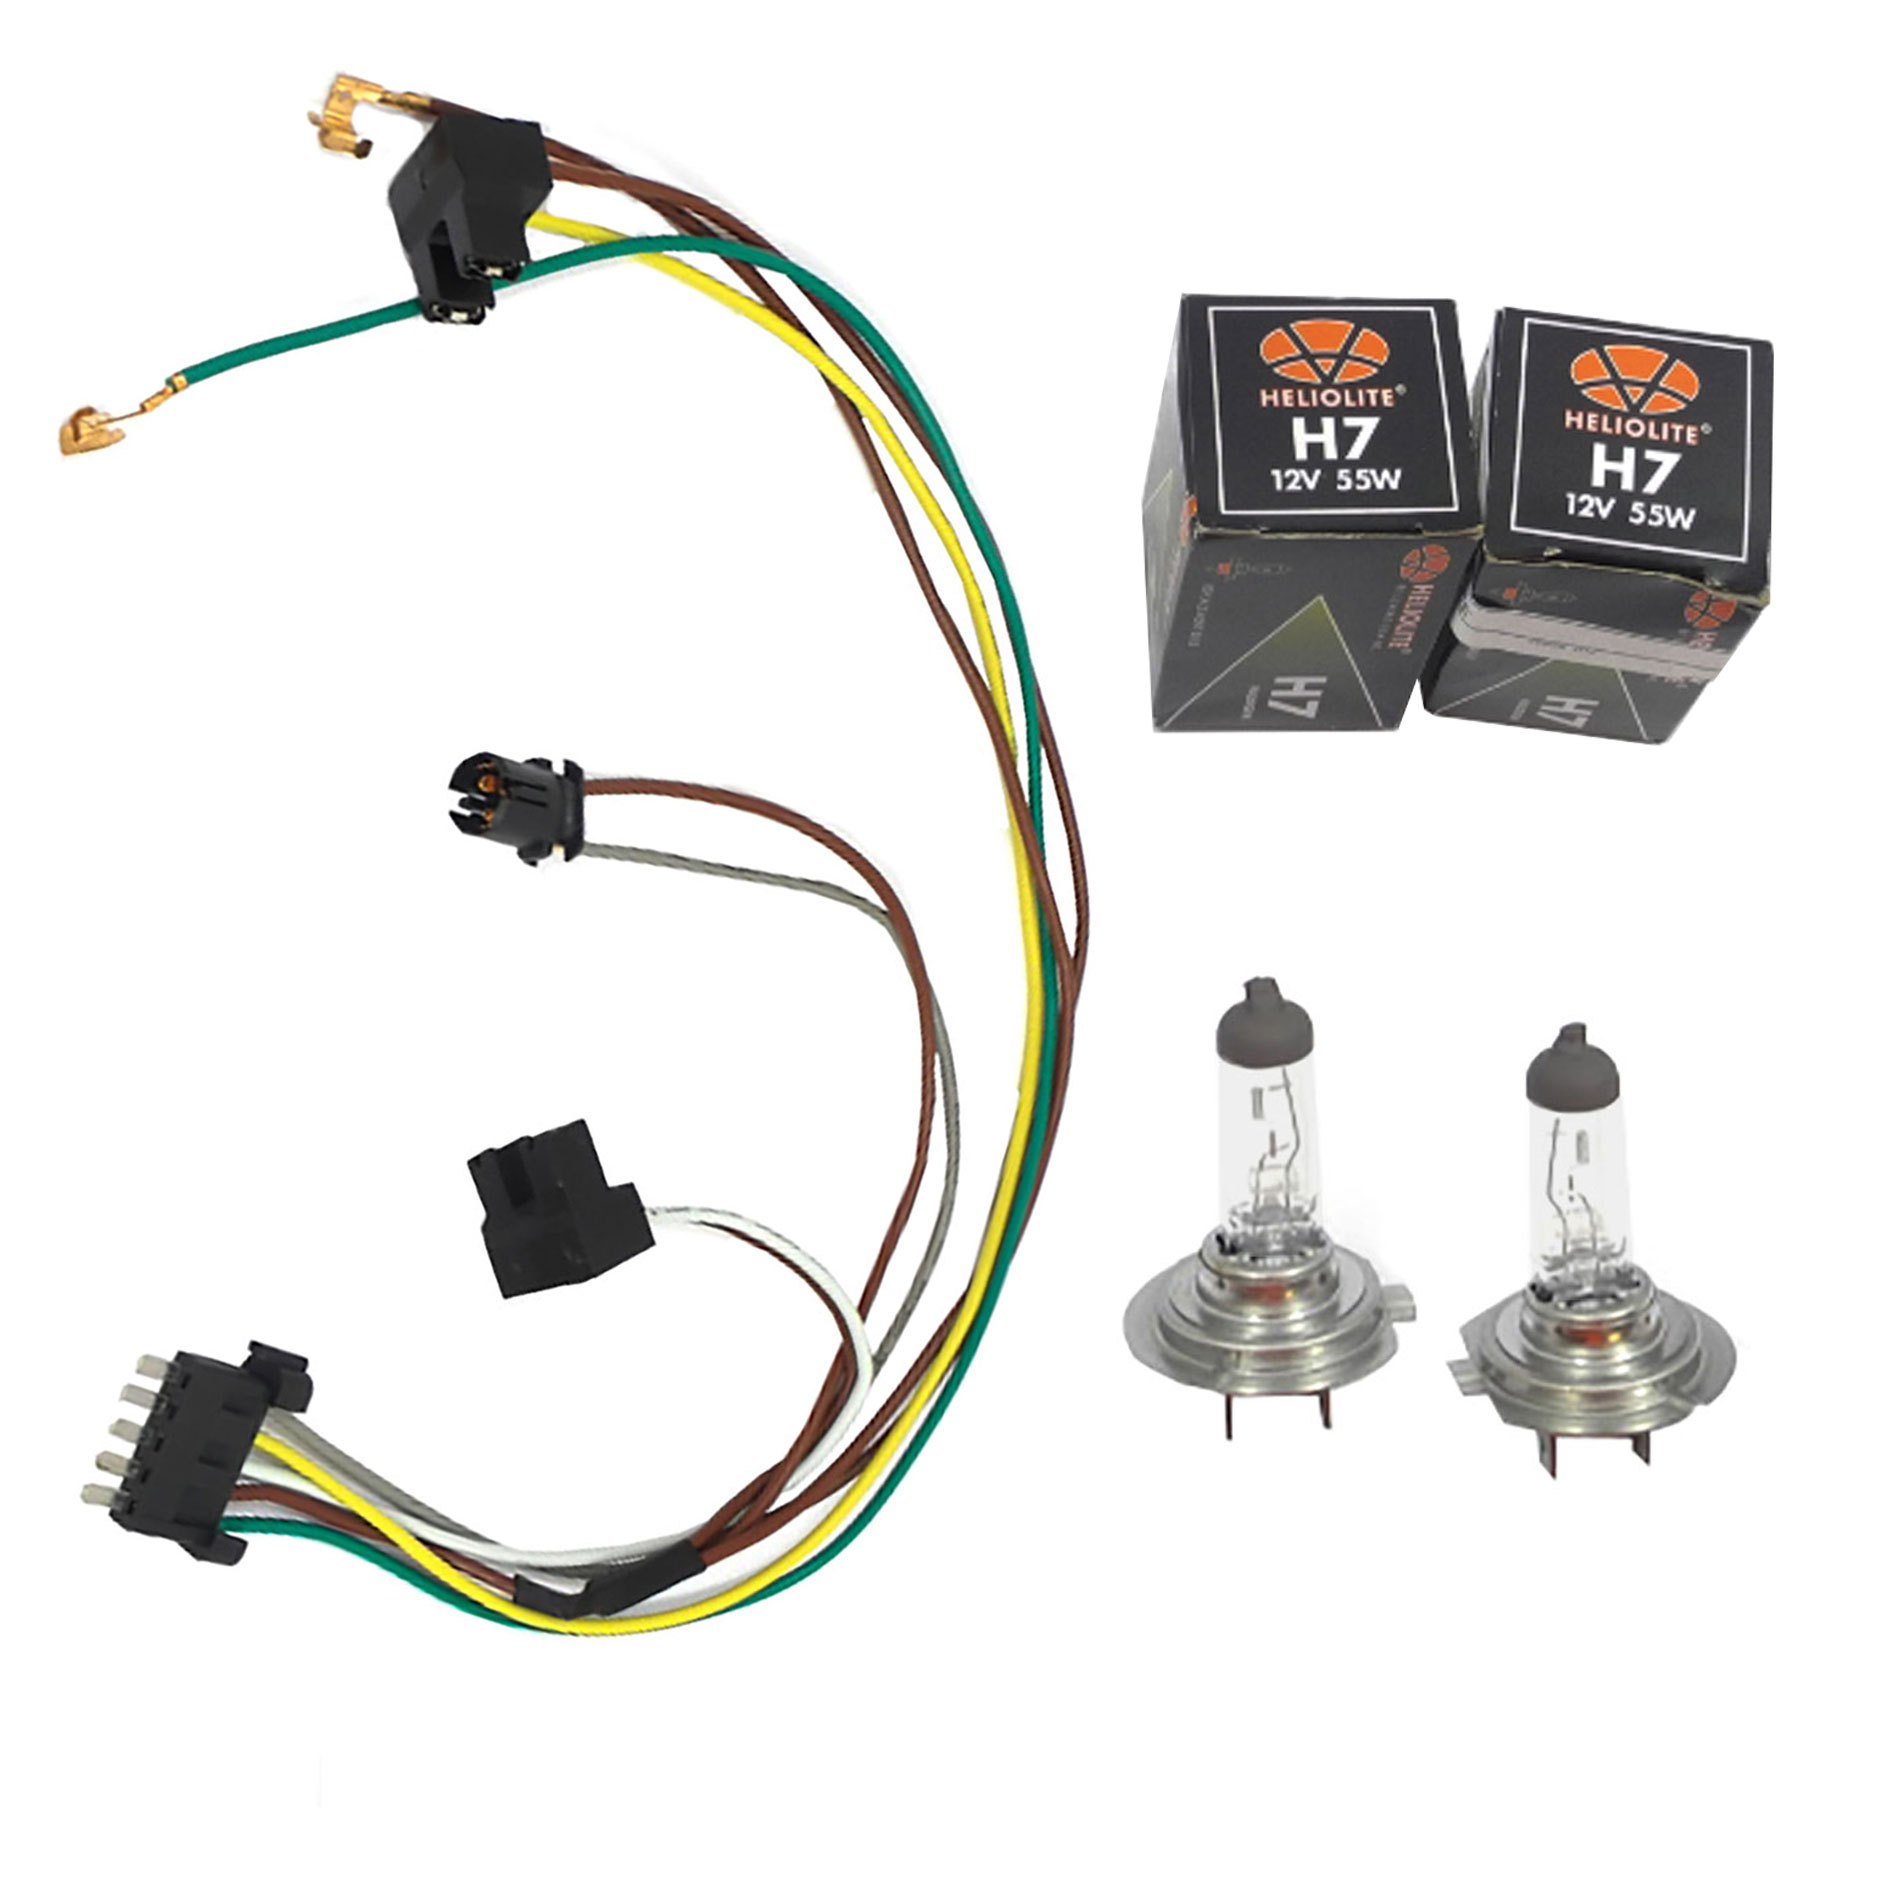 Details about For C230 C320 Benz Headlight Wiring Harness & Headlight on what you'll need, what do women say quotes, what humans need, what do if, what do trina, what people need, what do tou think, what do holland, what do baby, baby things you need, what do you wanna be, what do plants need,